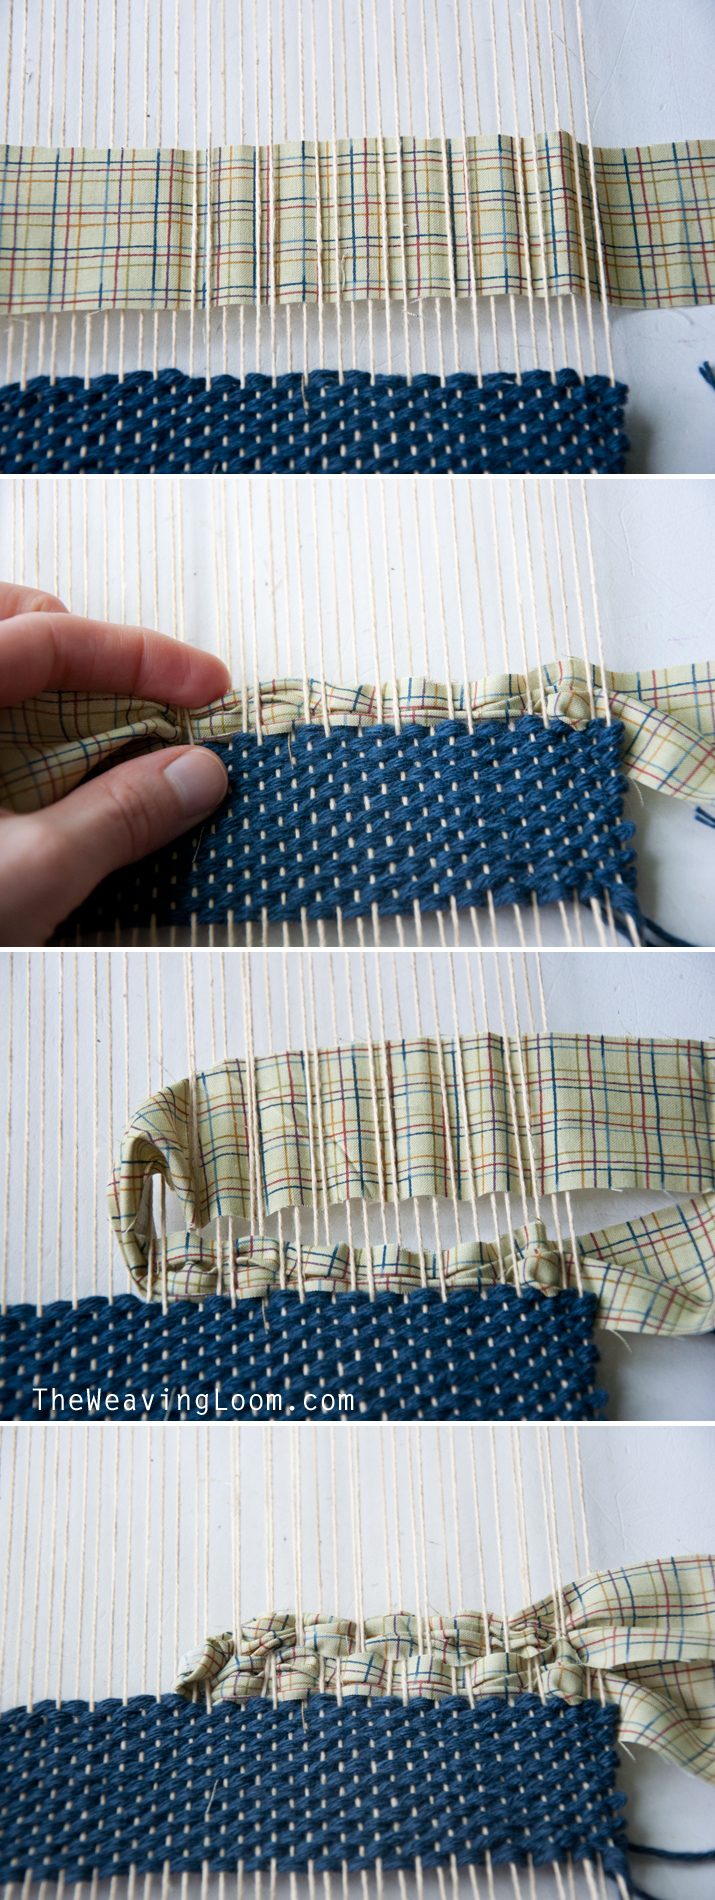 Weaving Technique || Weaving with Fabric | The Weaving Loom